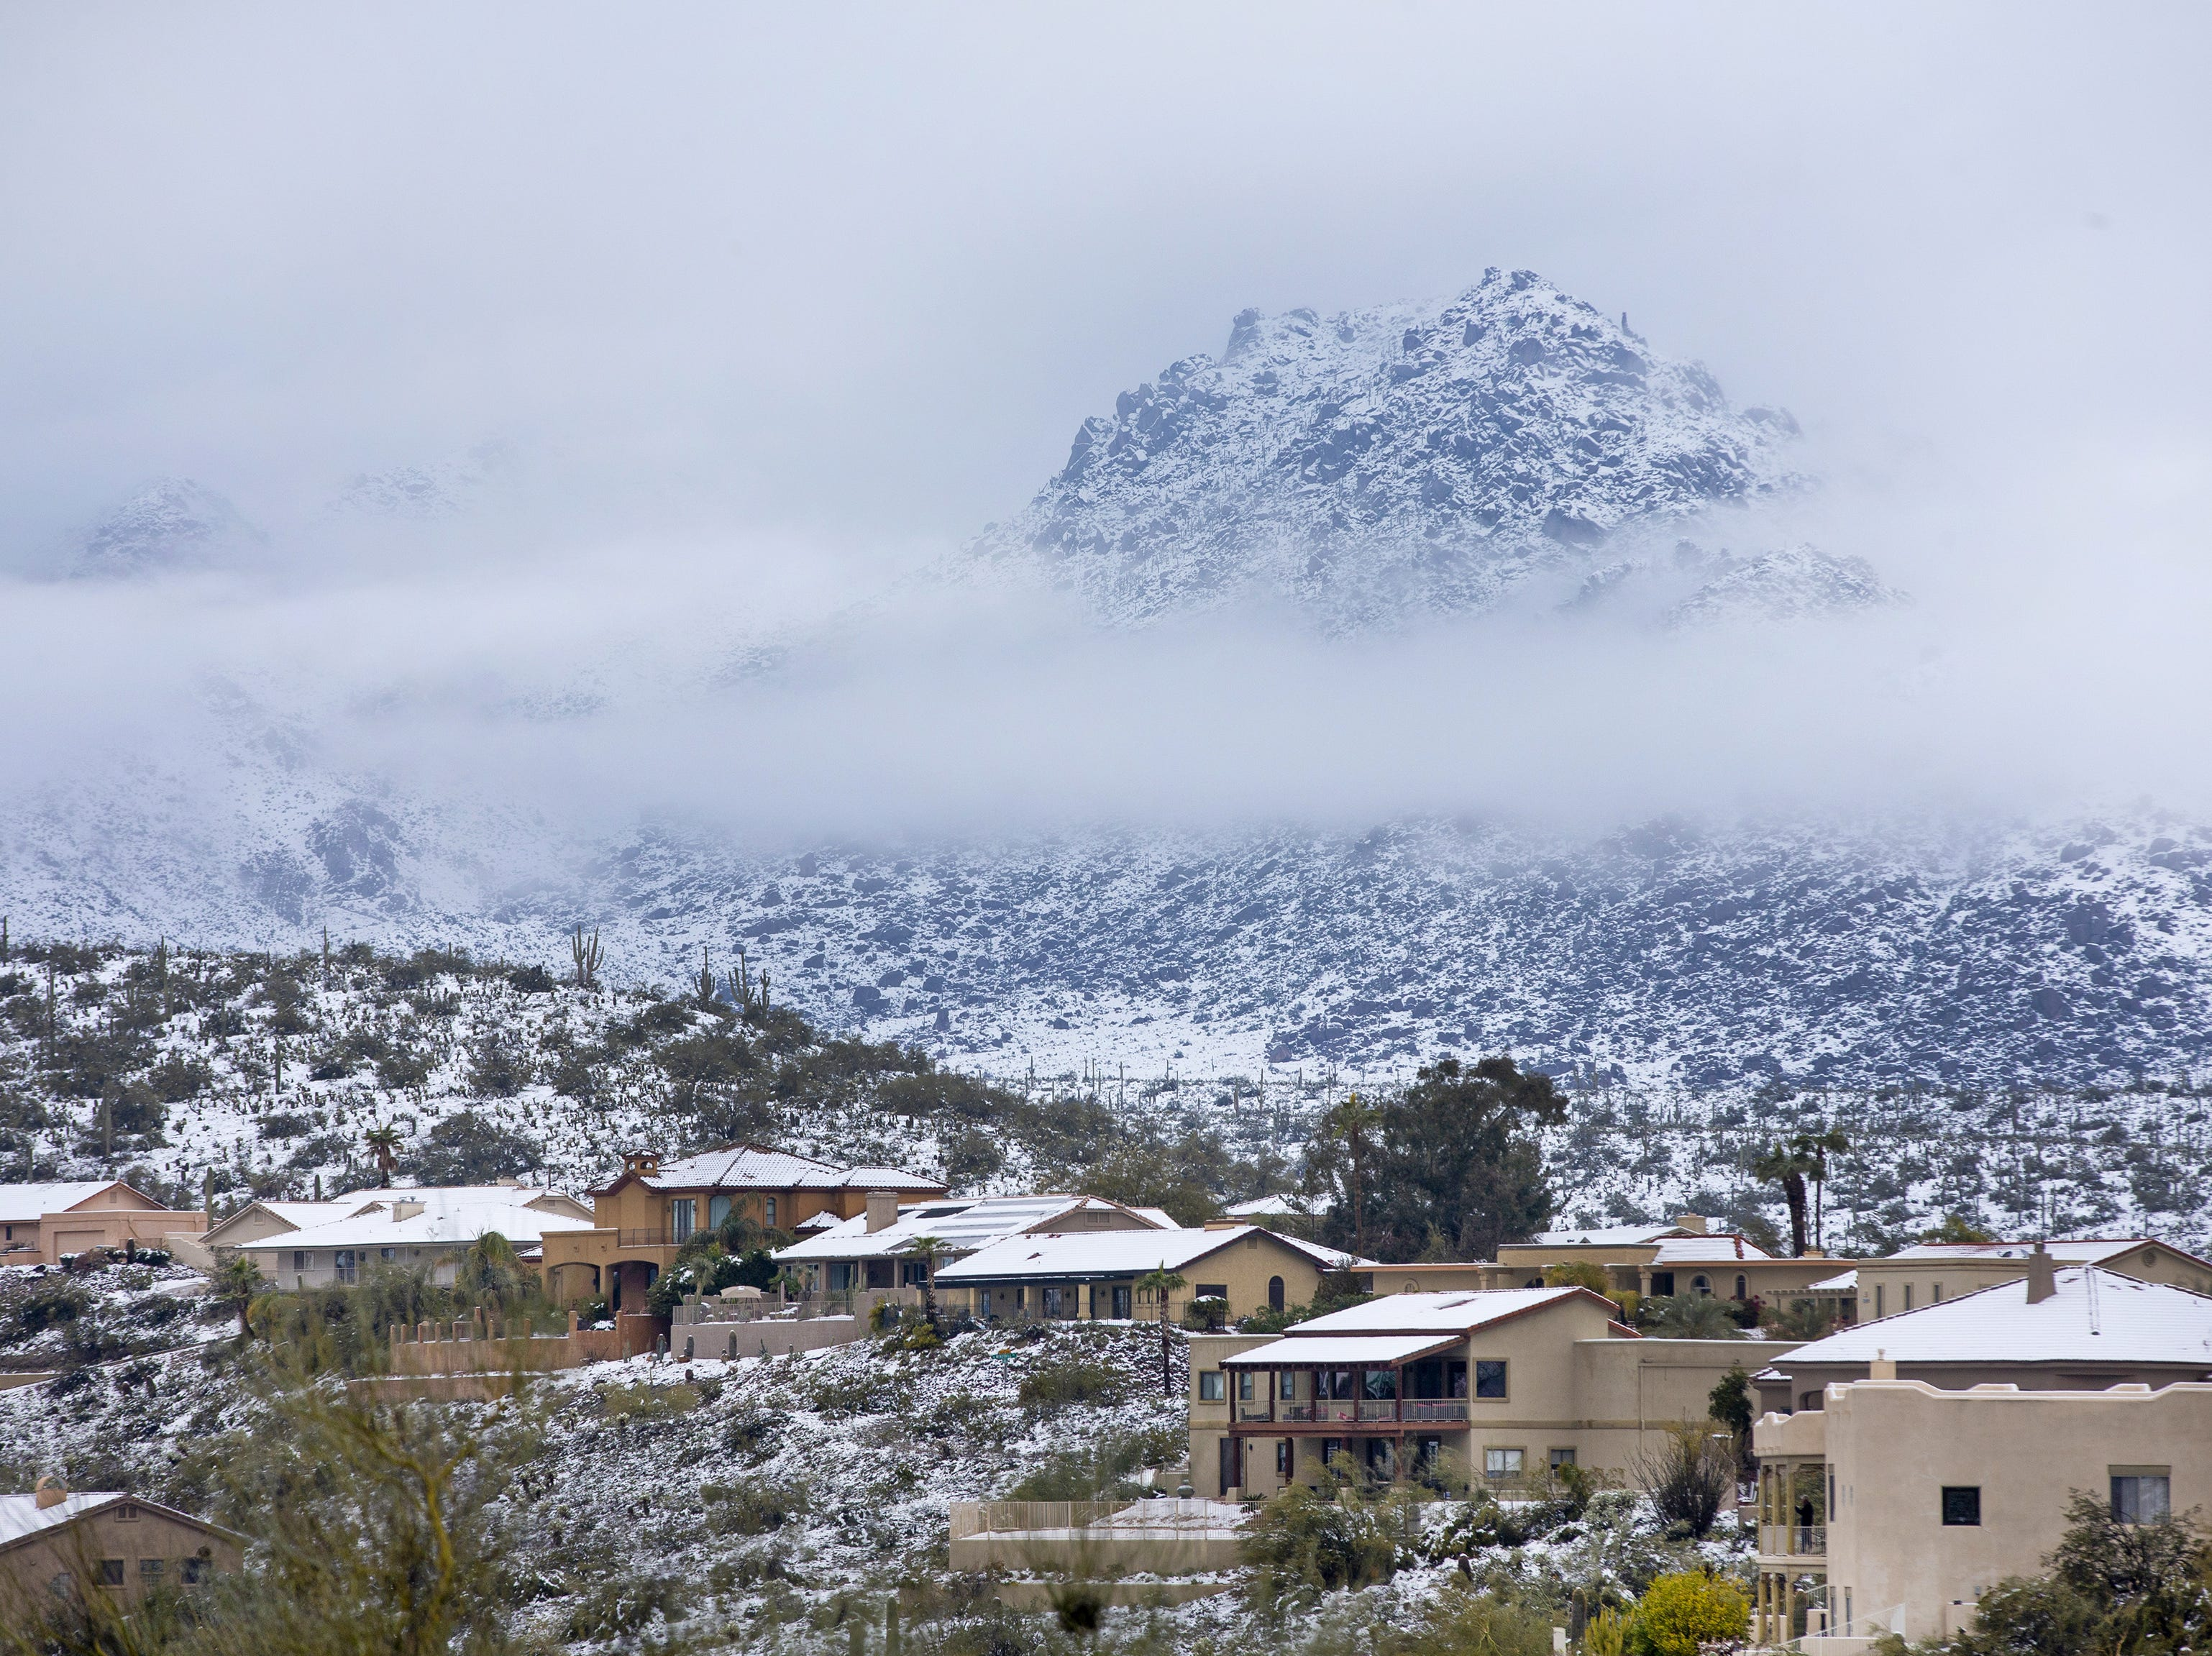 A winter storm covers Fountain Hills in snow.